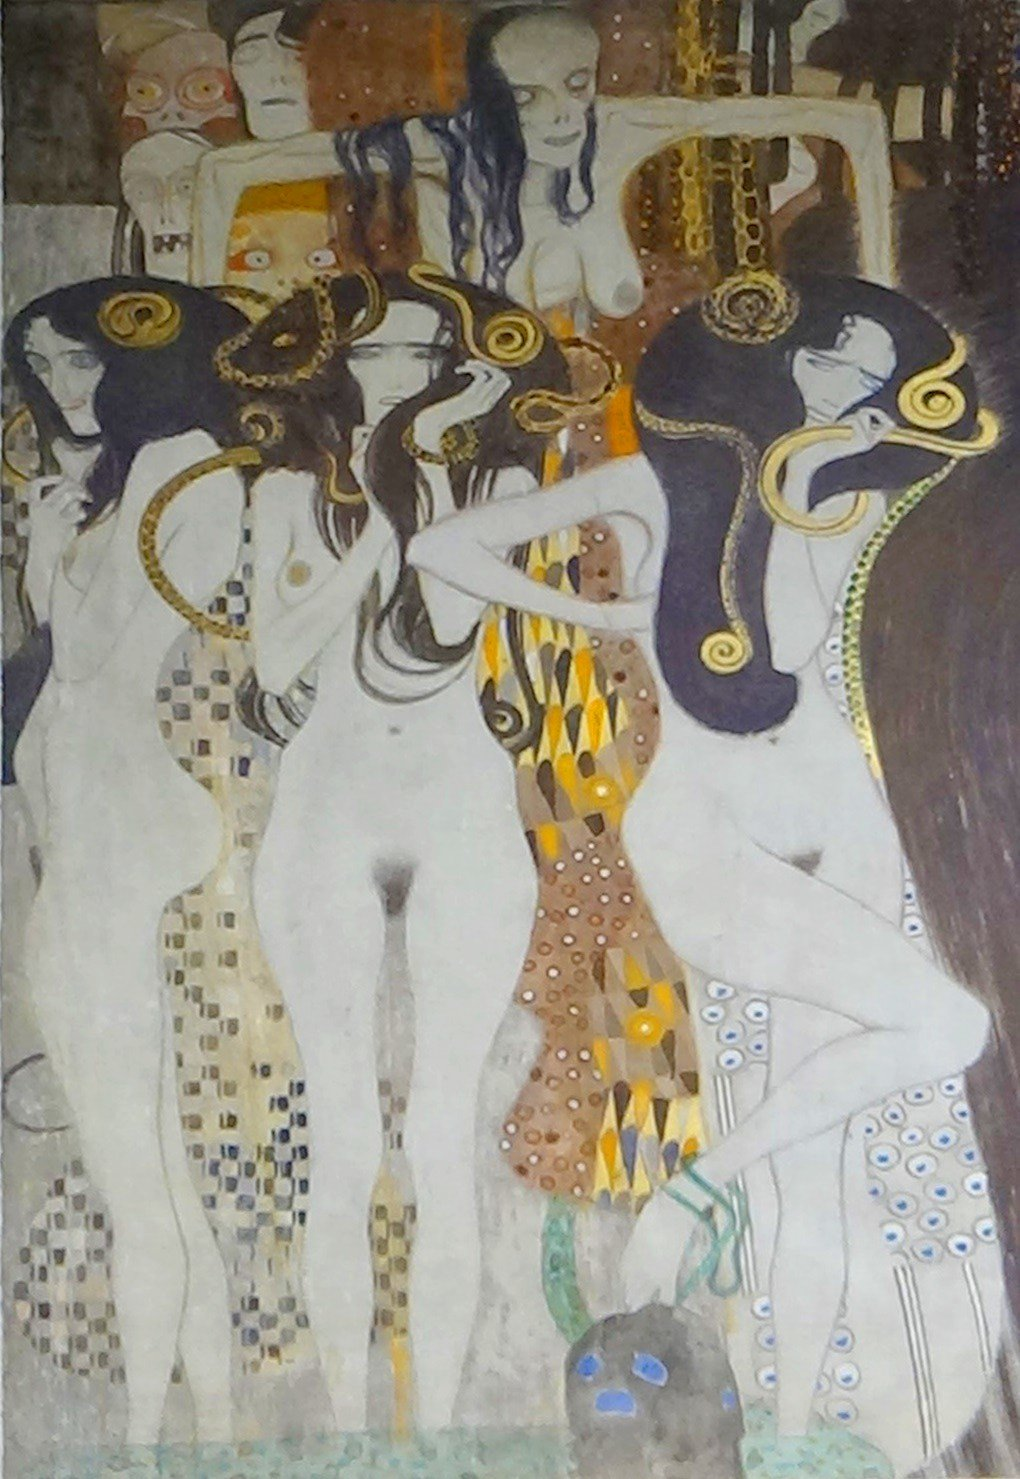 Gustav Klimt, Beethoven Frieze, 1902 _ John W. Schulze _ Flickr